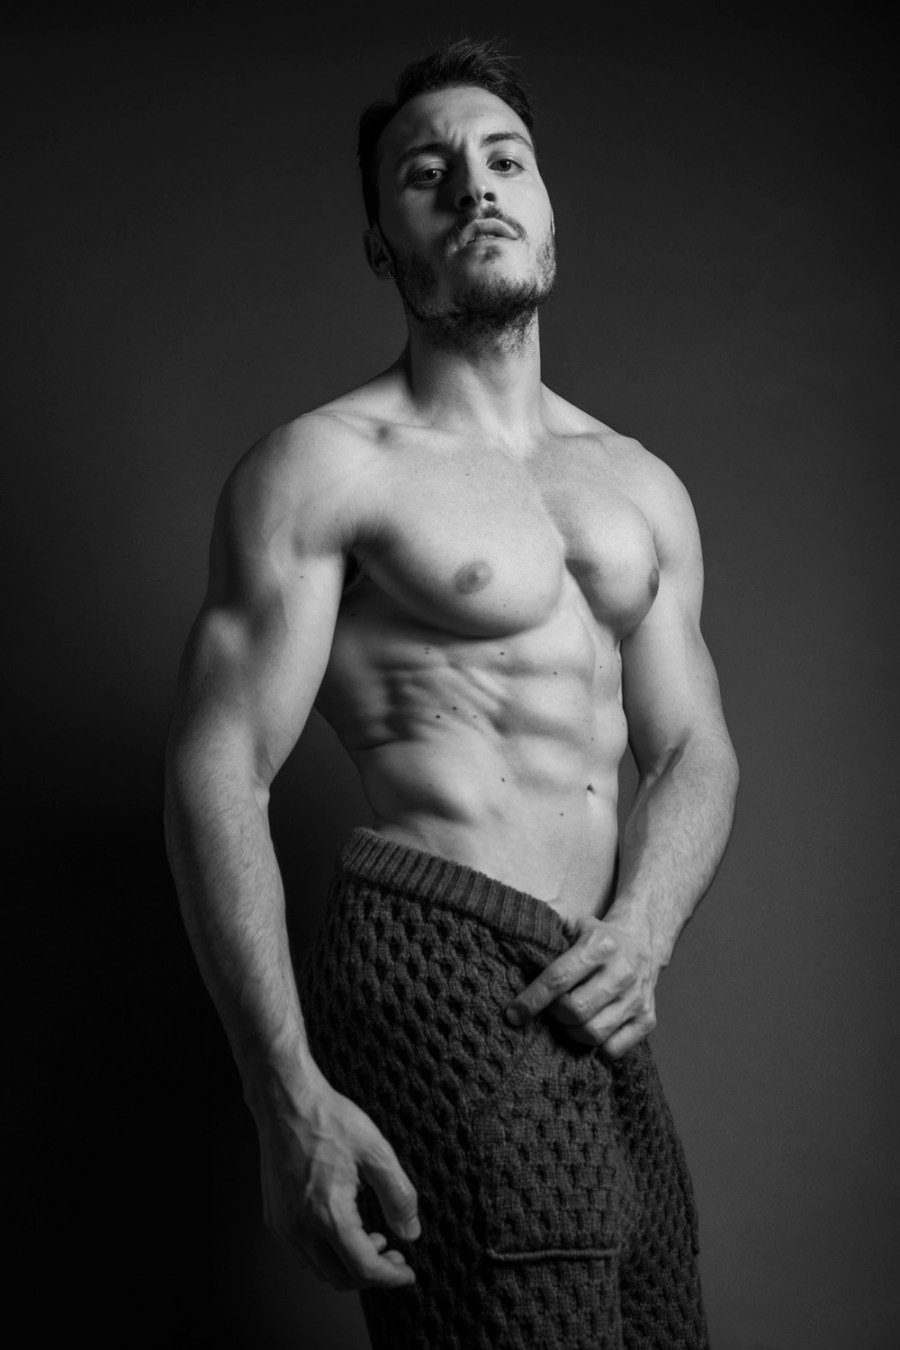 Hotness delivered to your screen: Salvatore Mazzarella by Giorgia Villa